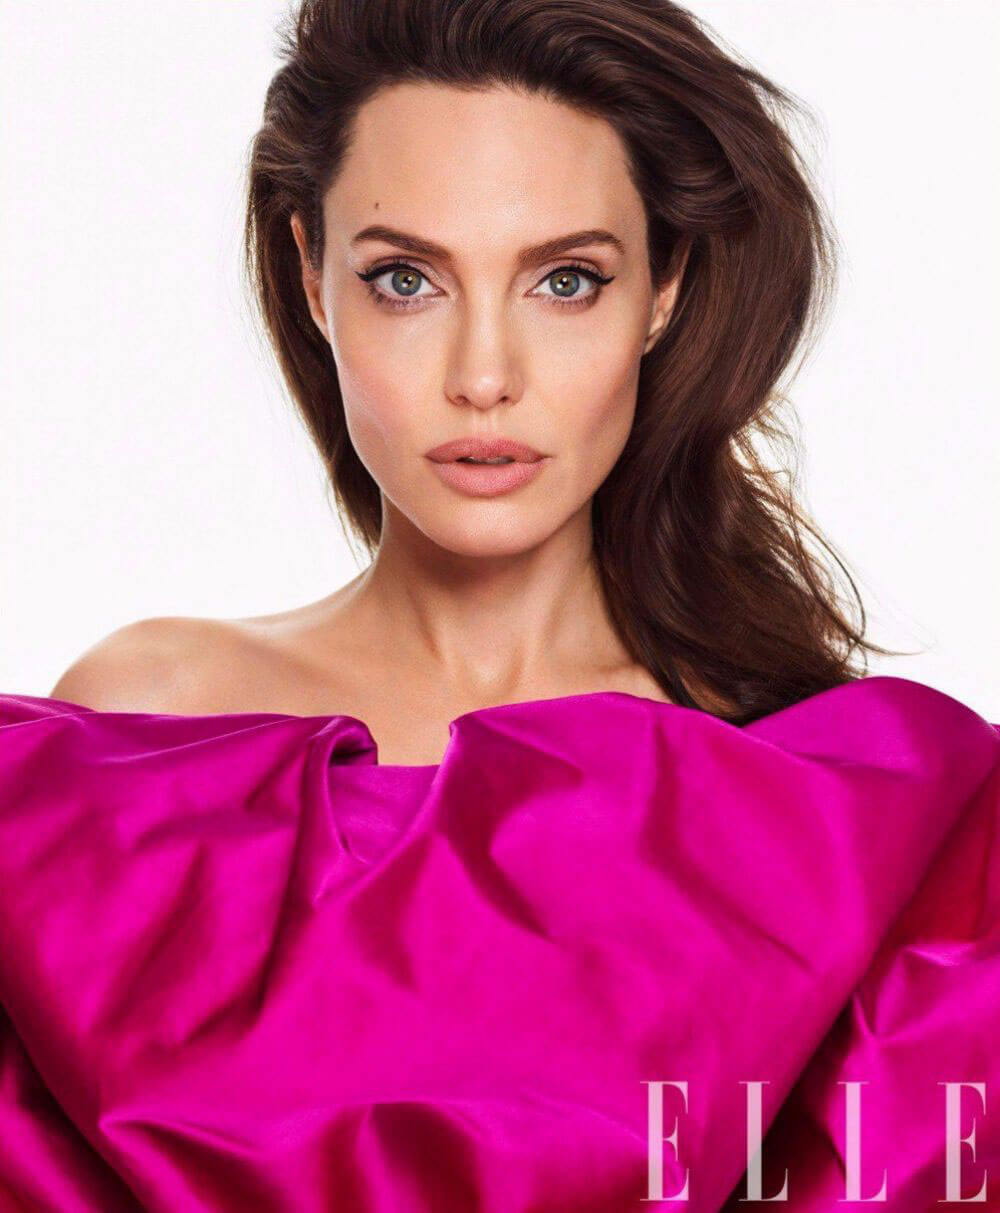 Angelina Jolie Poses for Elle Magazine, March 2018 Issue